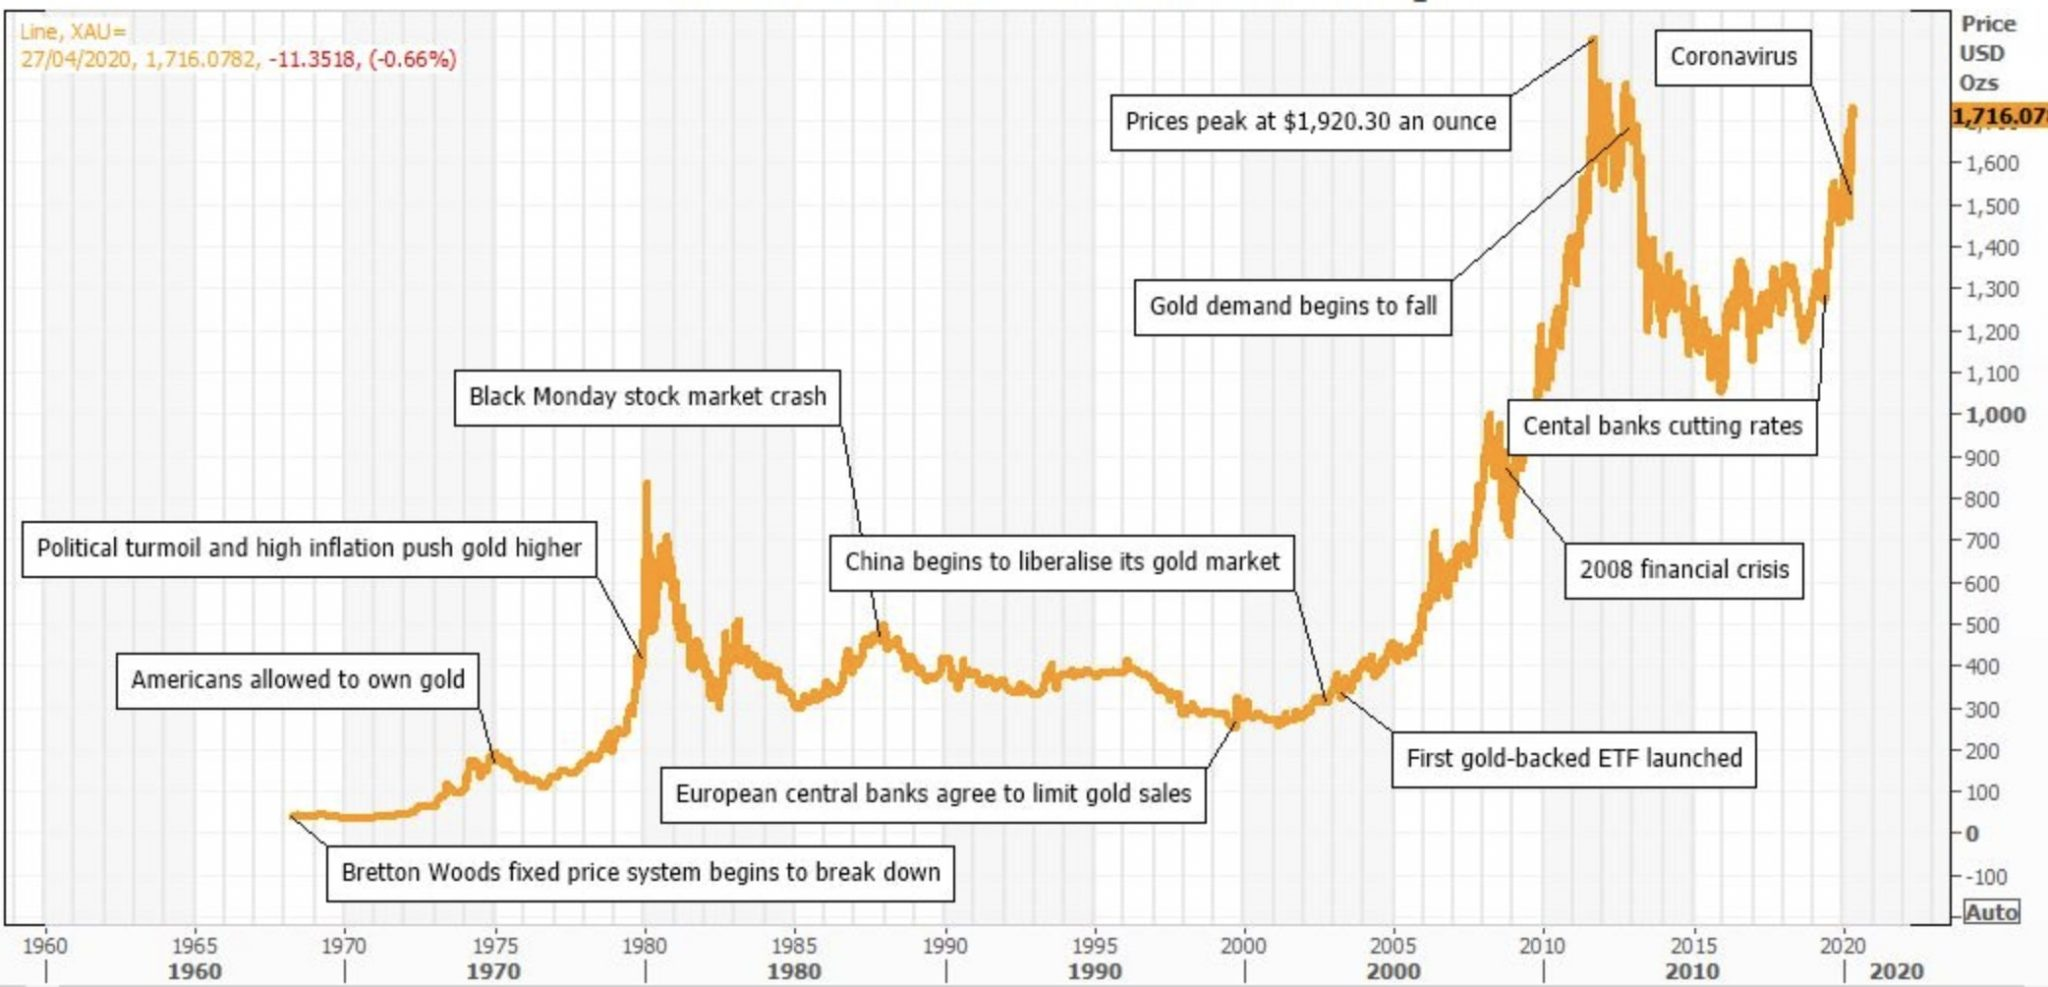 chart of gold rallies and slumps over a 60-year period